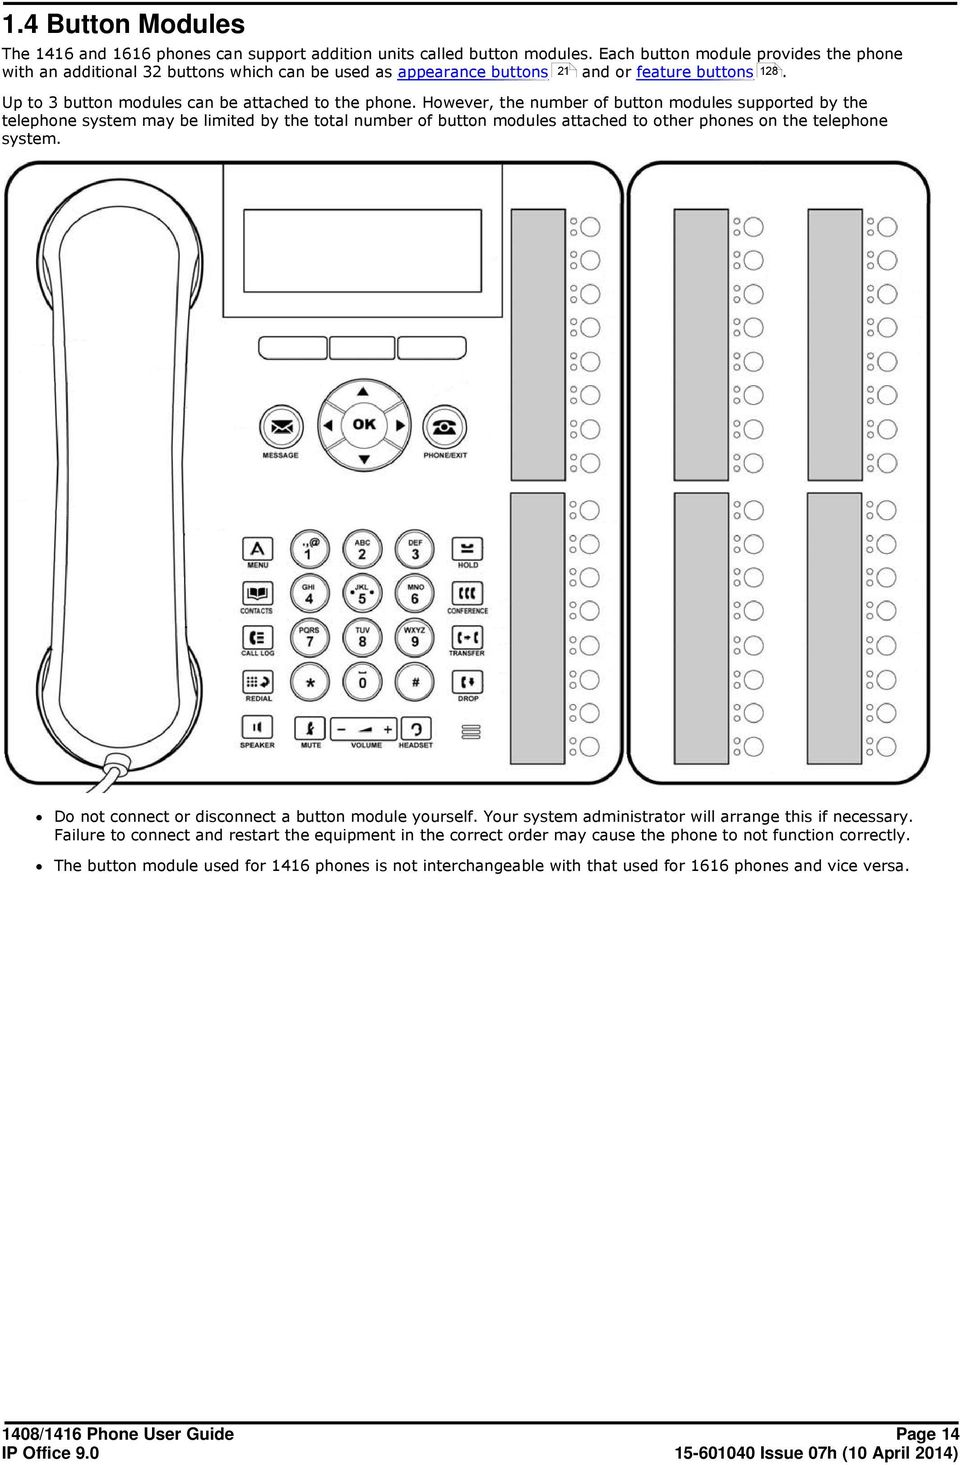 However, the number of button modules supported by the telephone system may be limited by the total number of button modules attached to other phones on the telephone system.